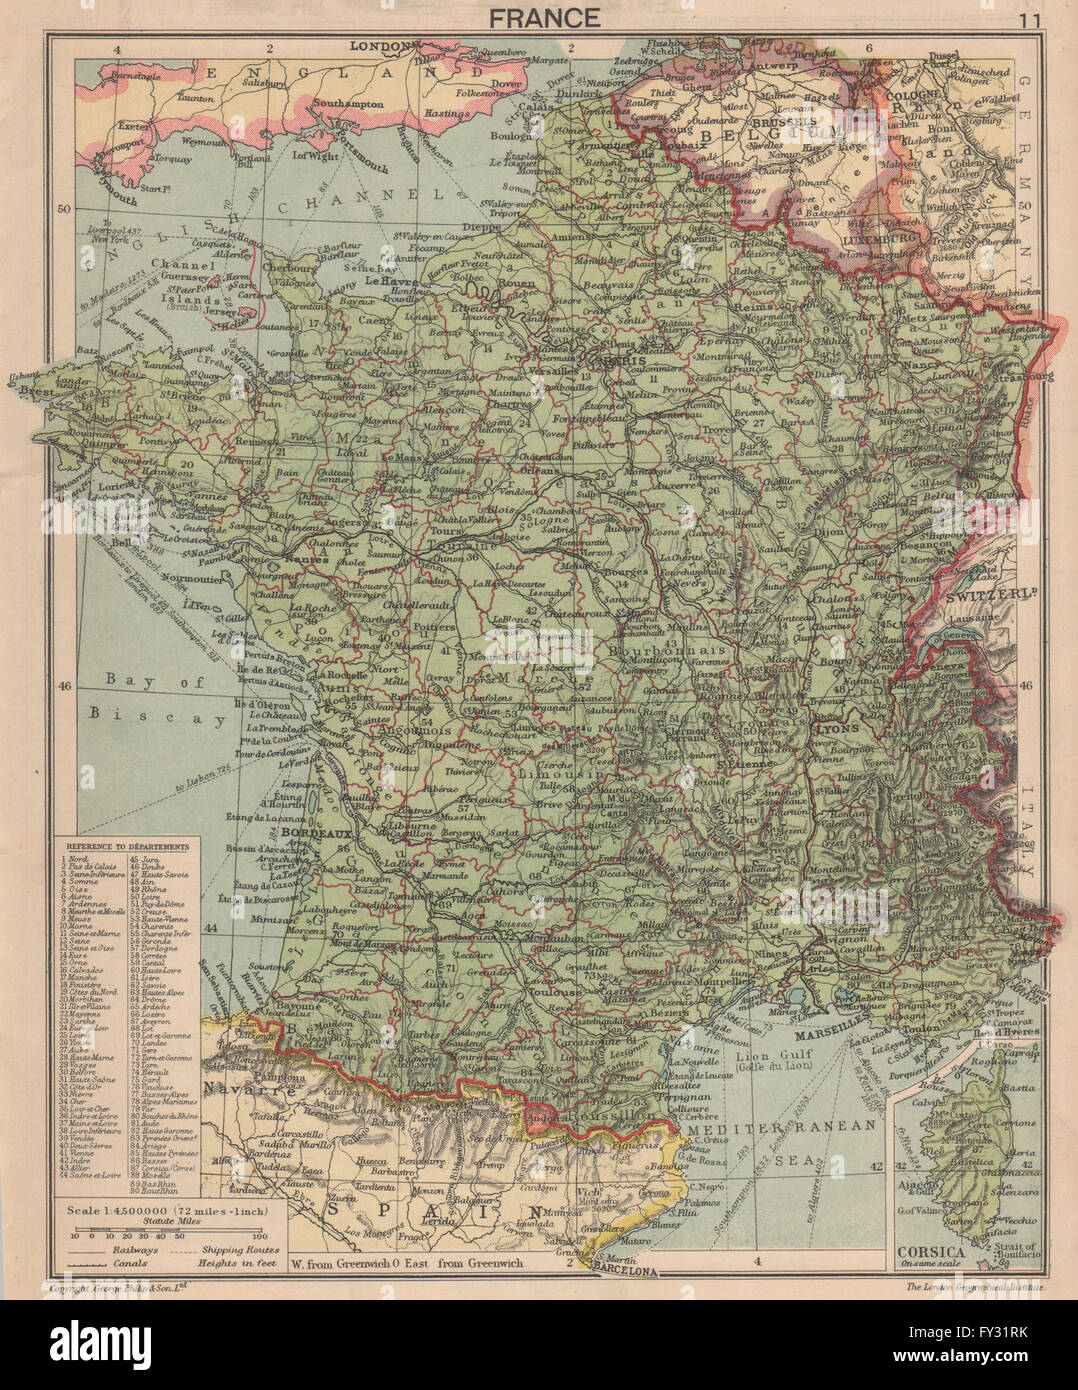 SECOND WORLD WAR: France in 1940. Pre-invasion, 1940 vintage map ...